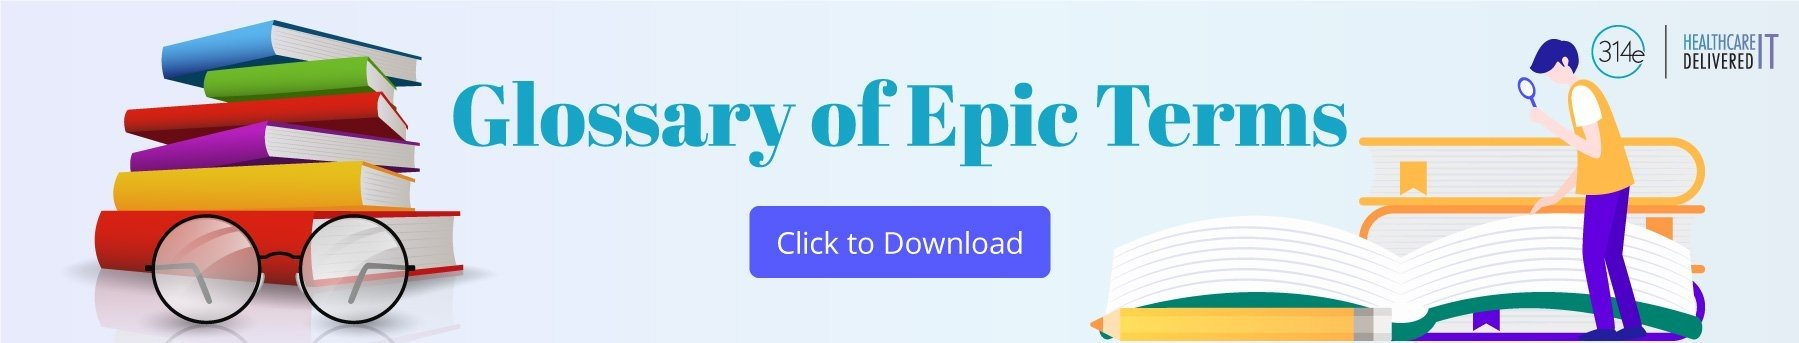 Download the Glossary of Epic Terms